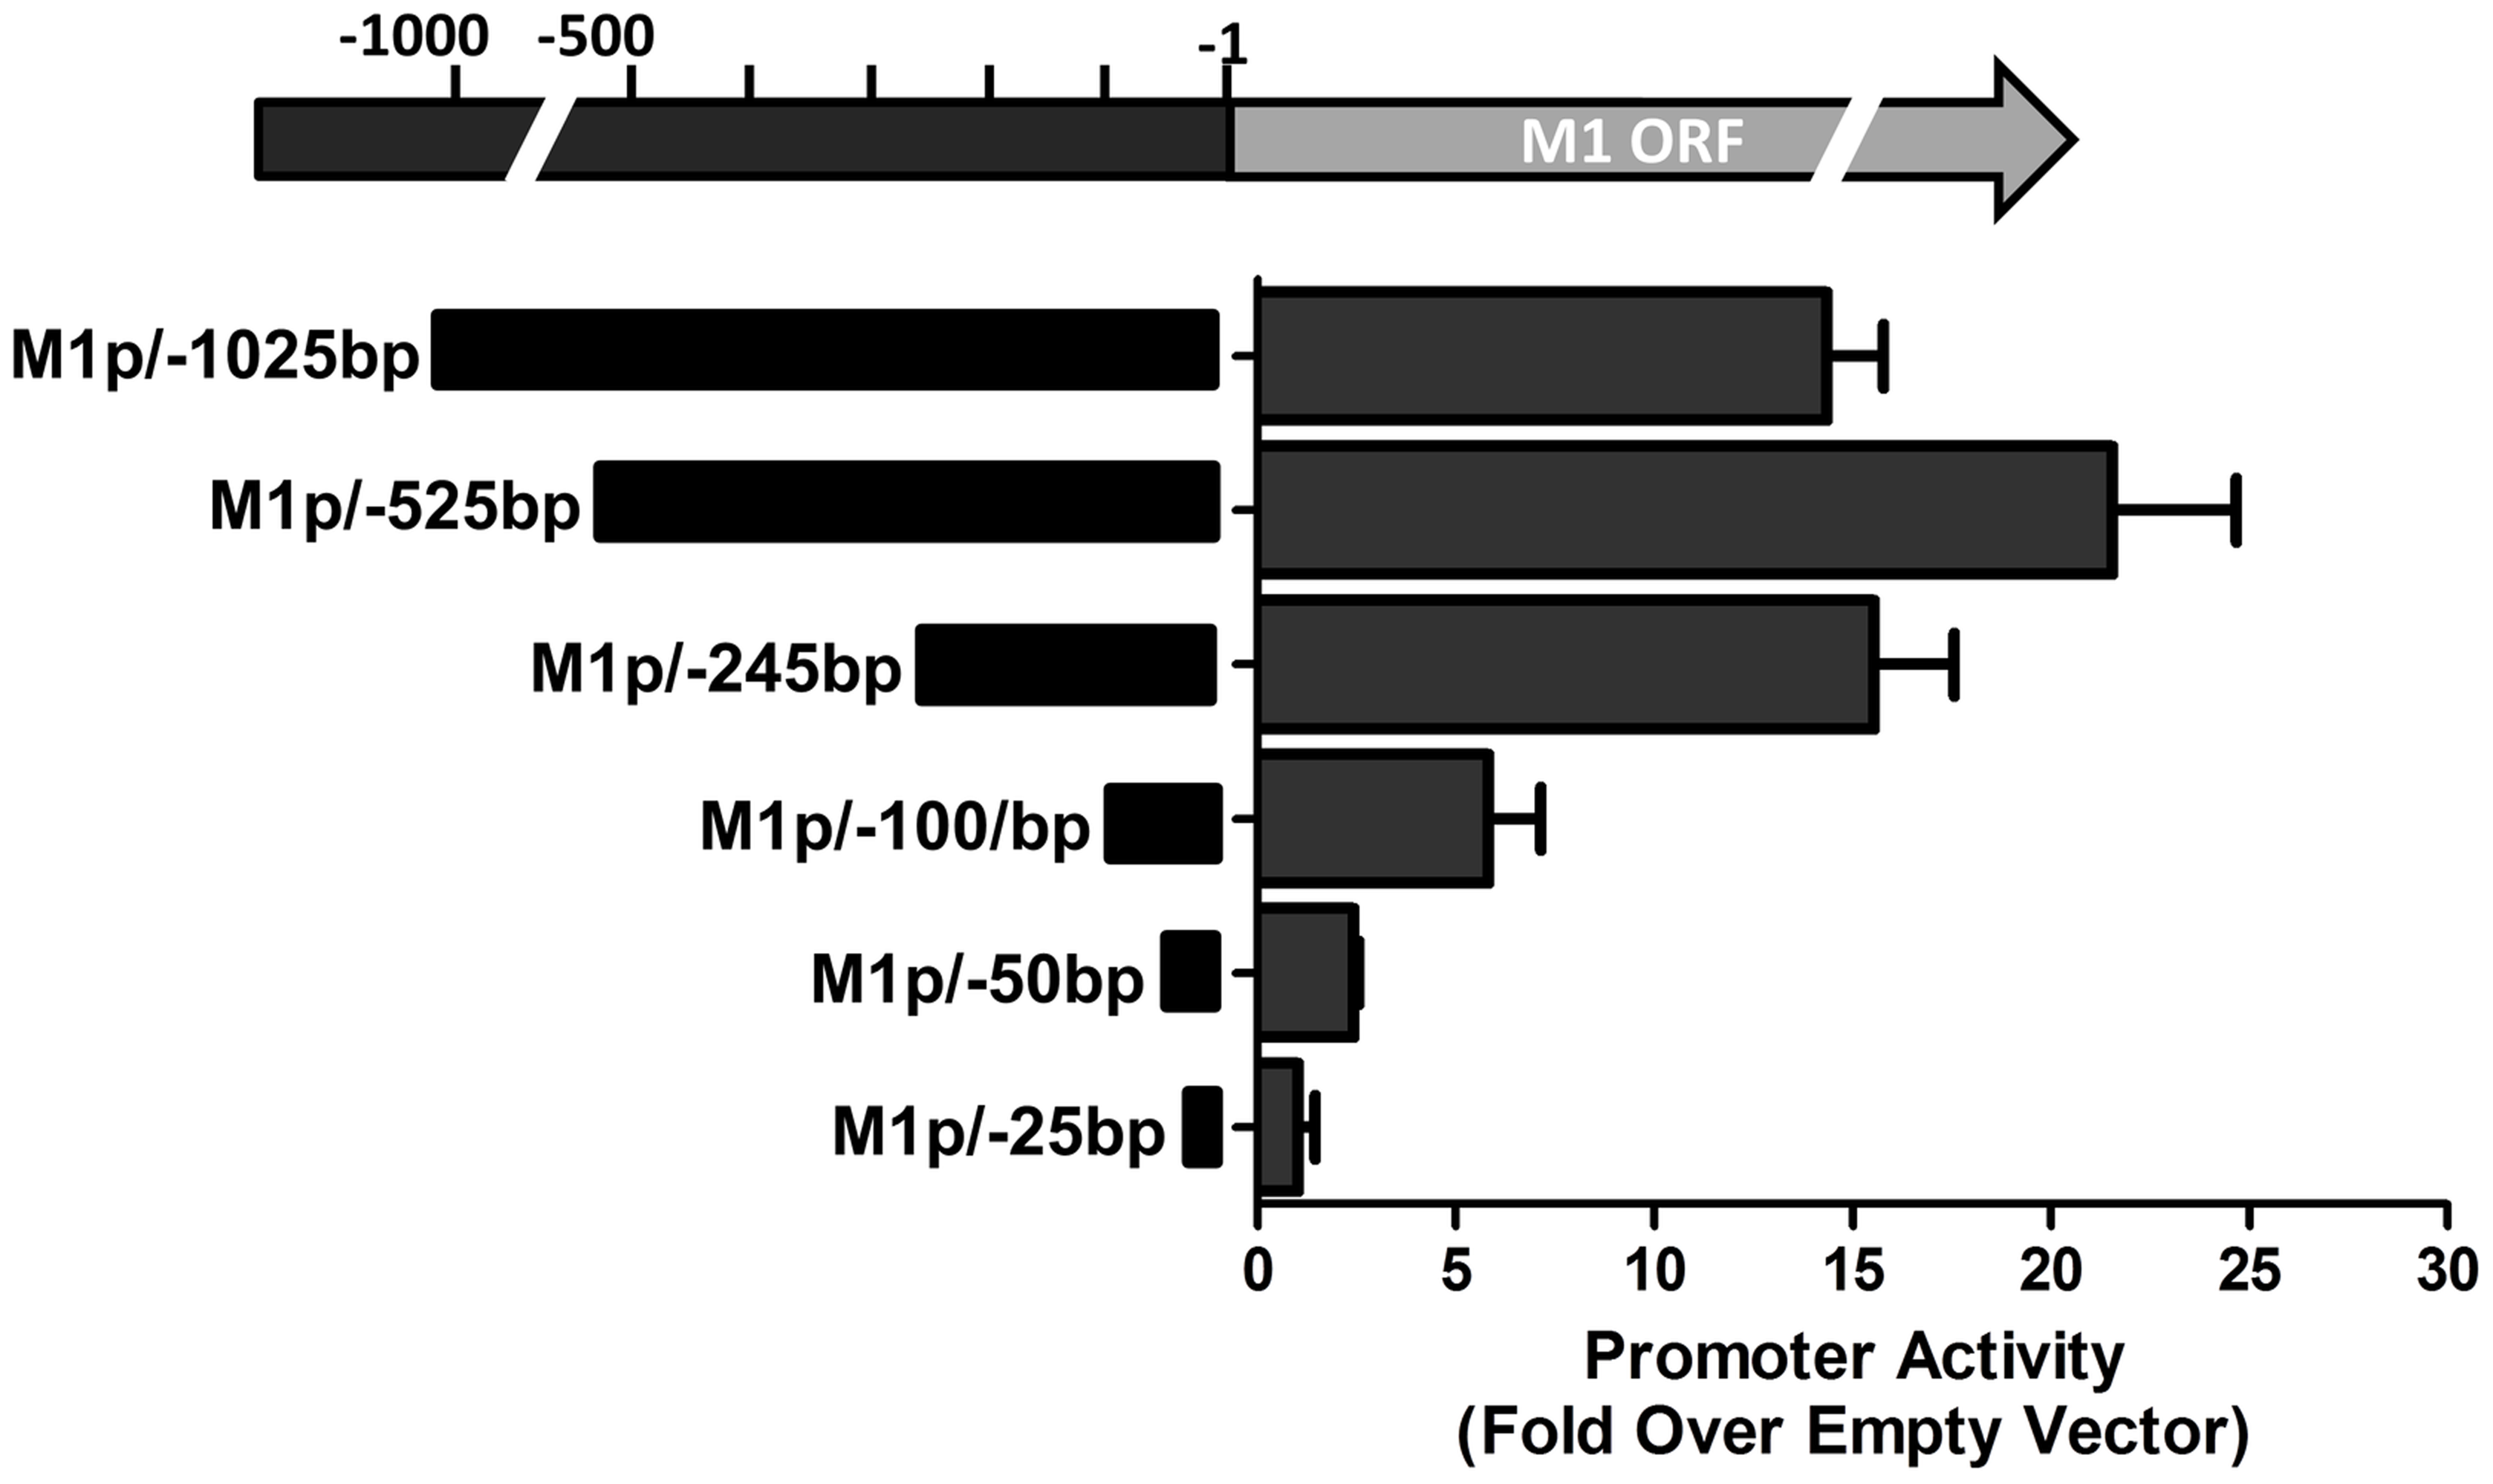 M1 promoter exhibits basal activity in a plasmablast cell line.